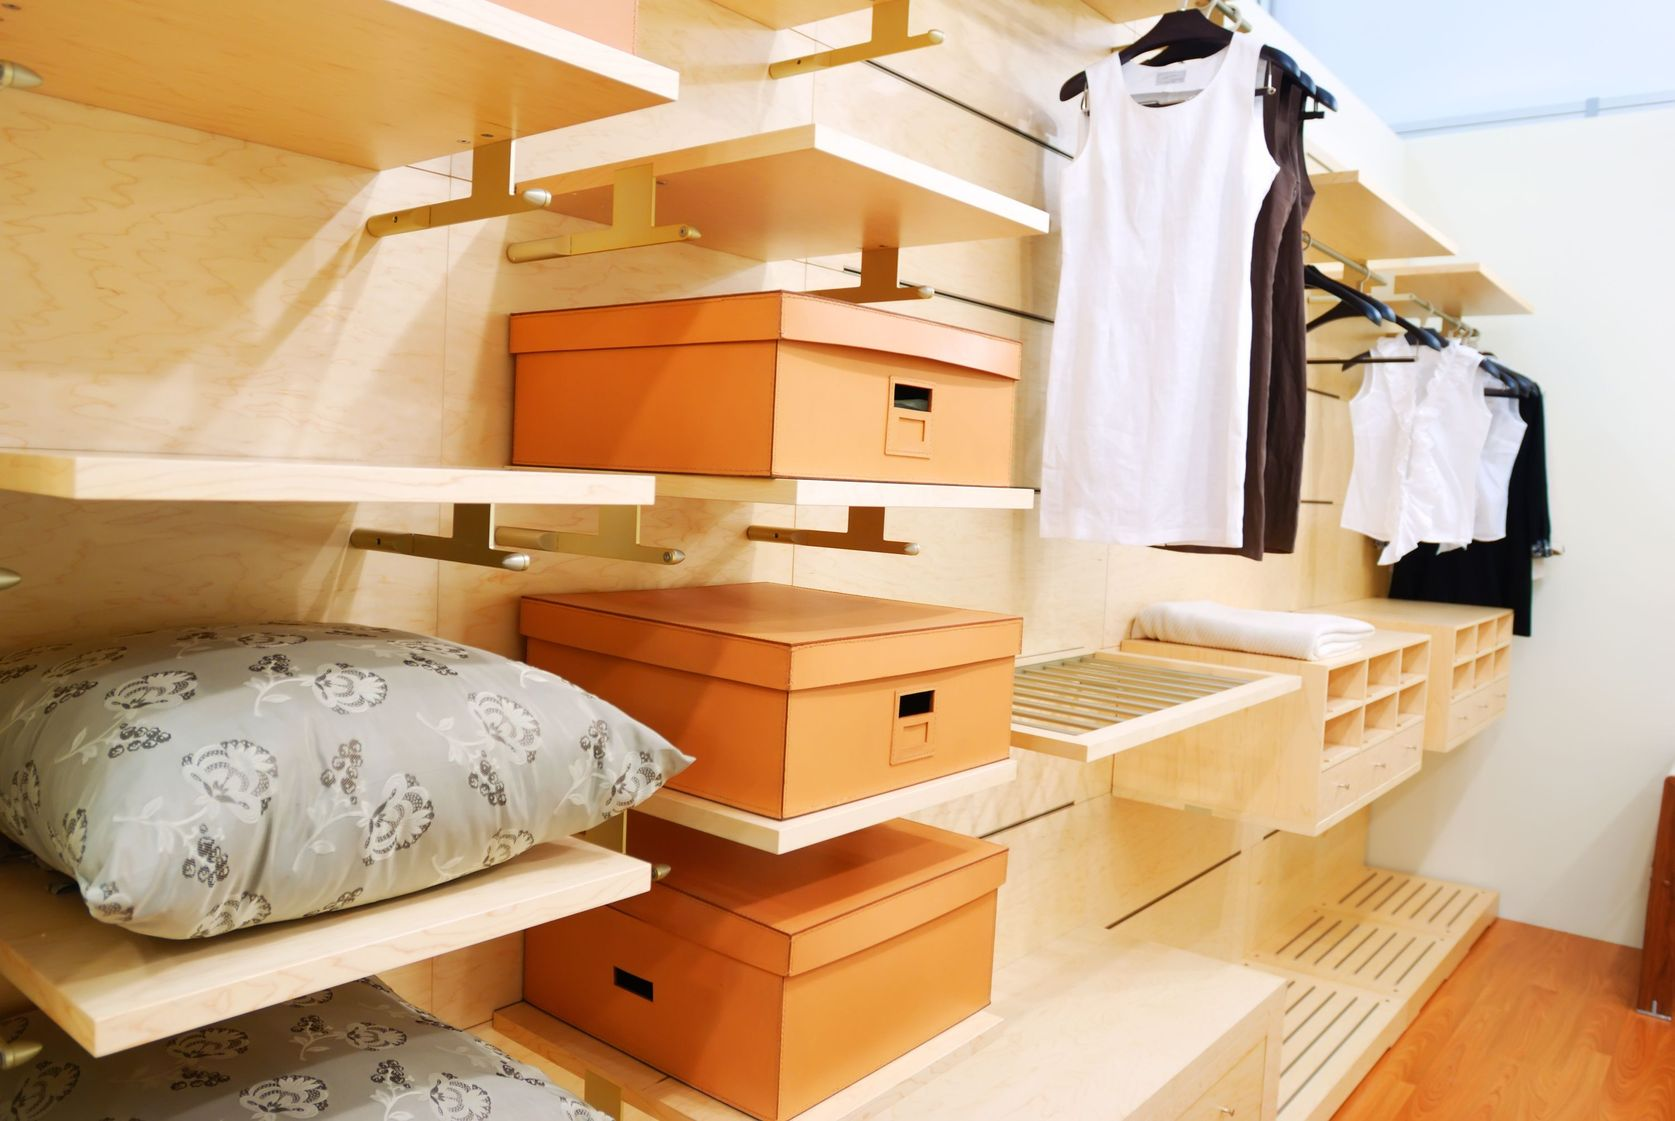 Creative Storage Solutions | Cleaning & Organizing | Home Decluttering | Clever Space-Saving Solutions and Storage Ideas | DIY